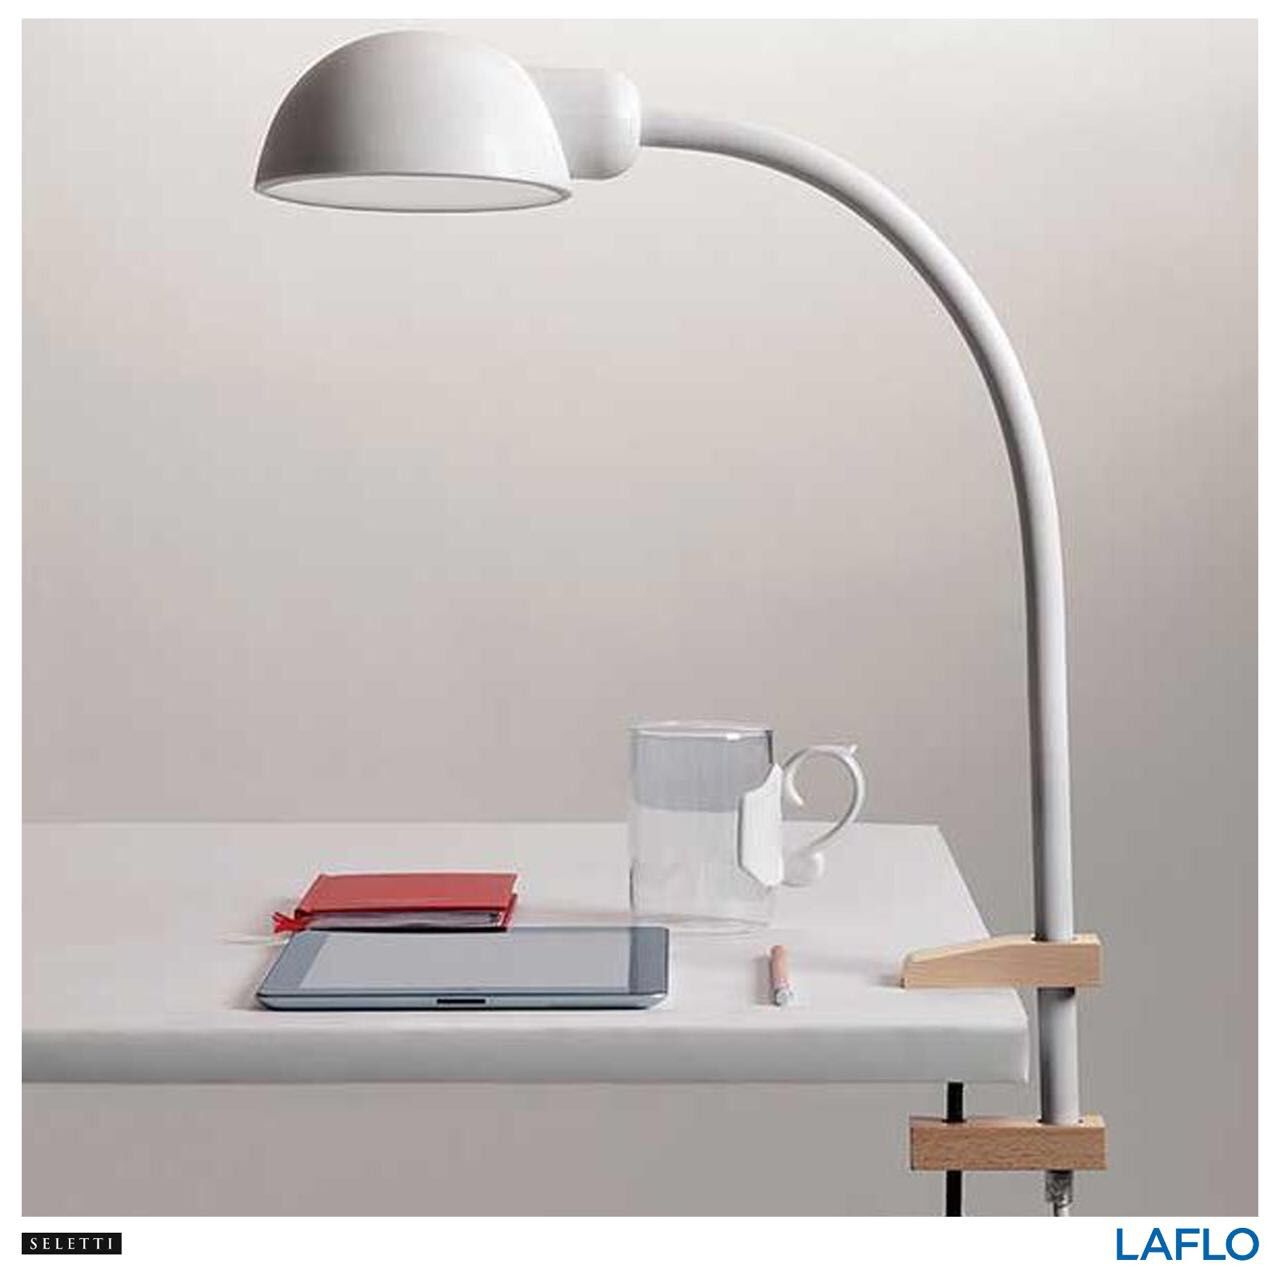 Softclamp Delivers Everything It Promise This Lamp Is Soft Bendable And Can Clamp On Various Surfaces Office Interior Design Lamp Desk Lamp